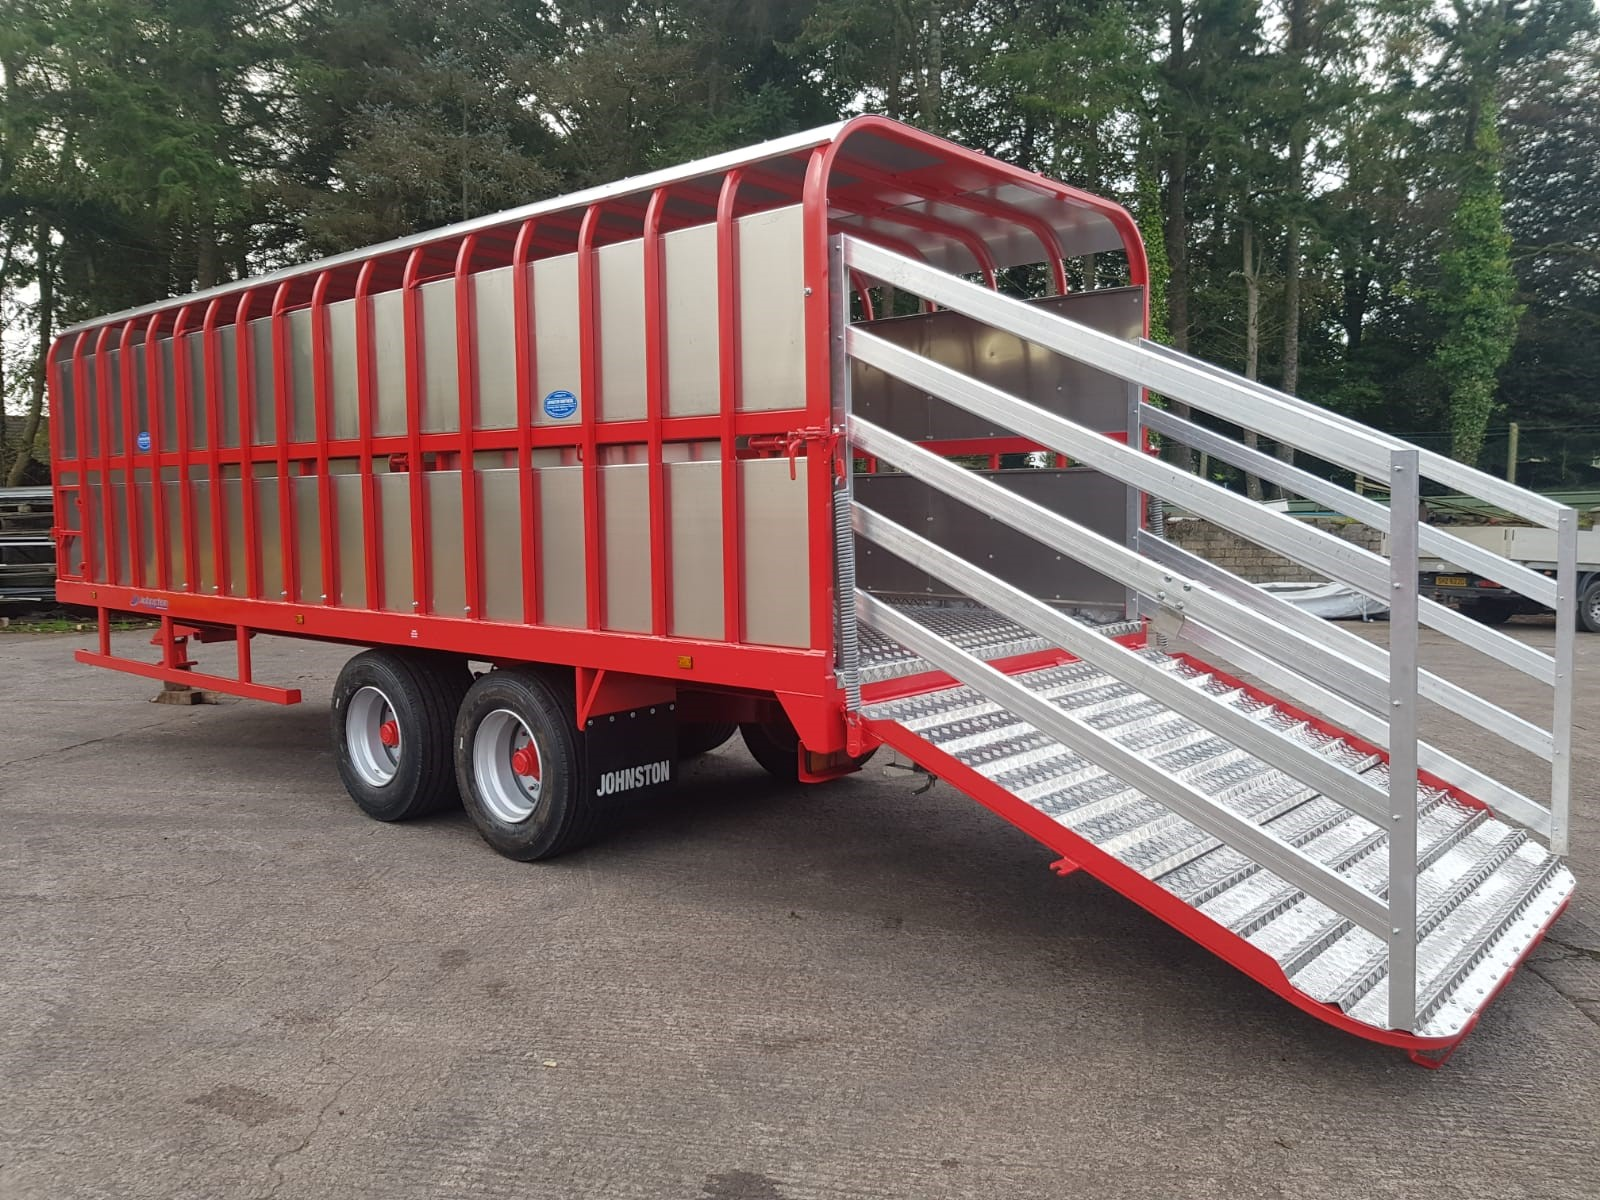 Johnston Bros 18ft Cattle Trailer